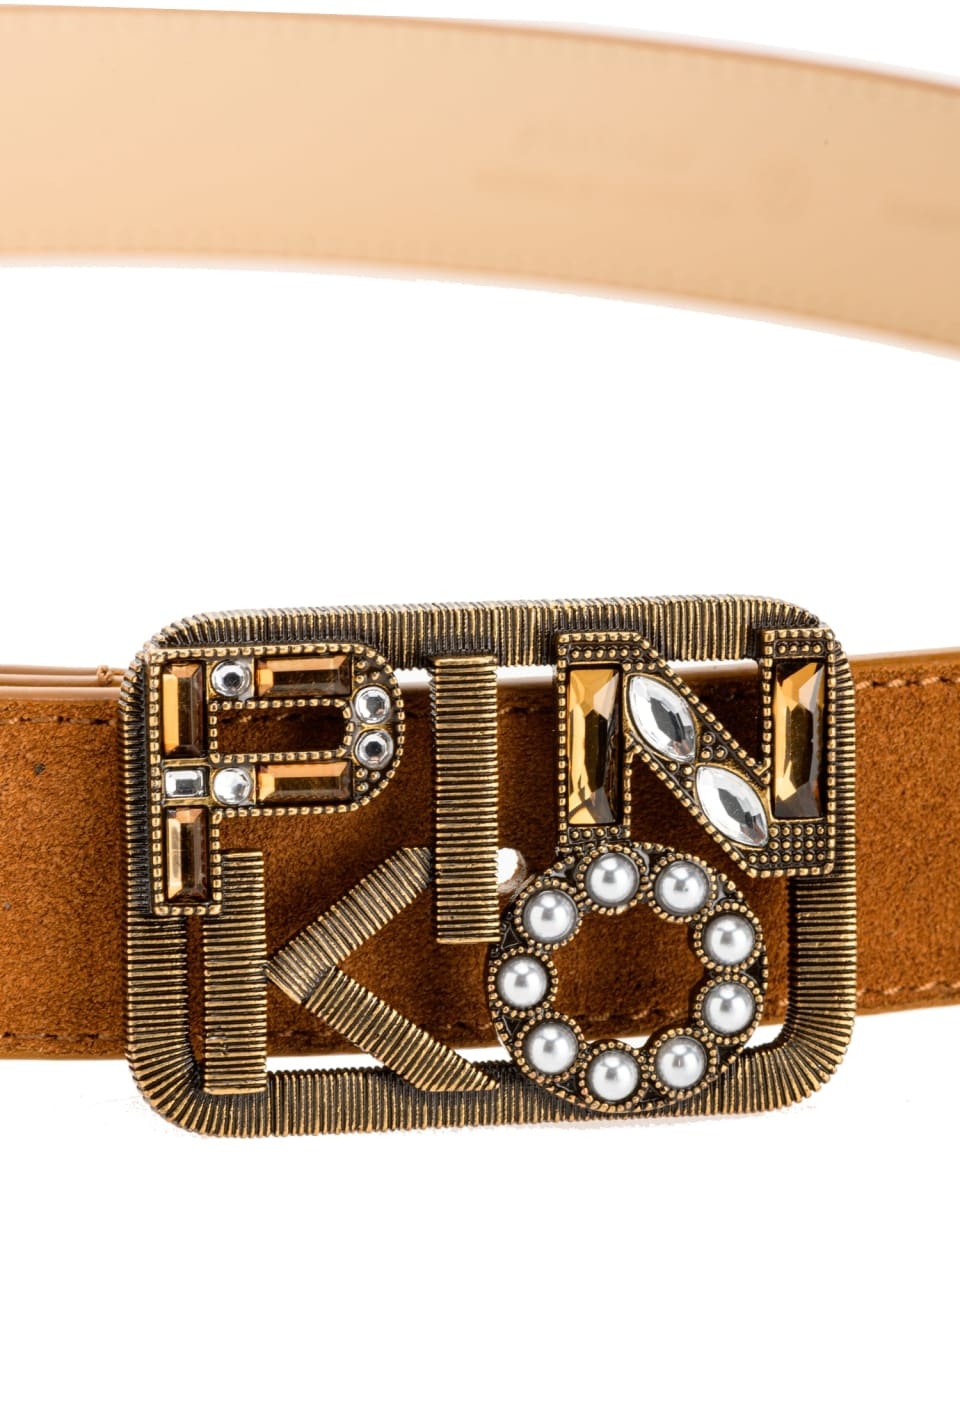 Narrow belt with jewel Logo buckle - Pinko